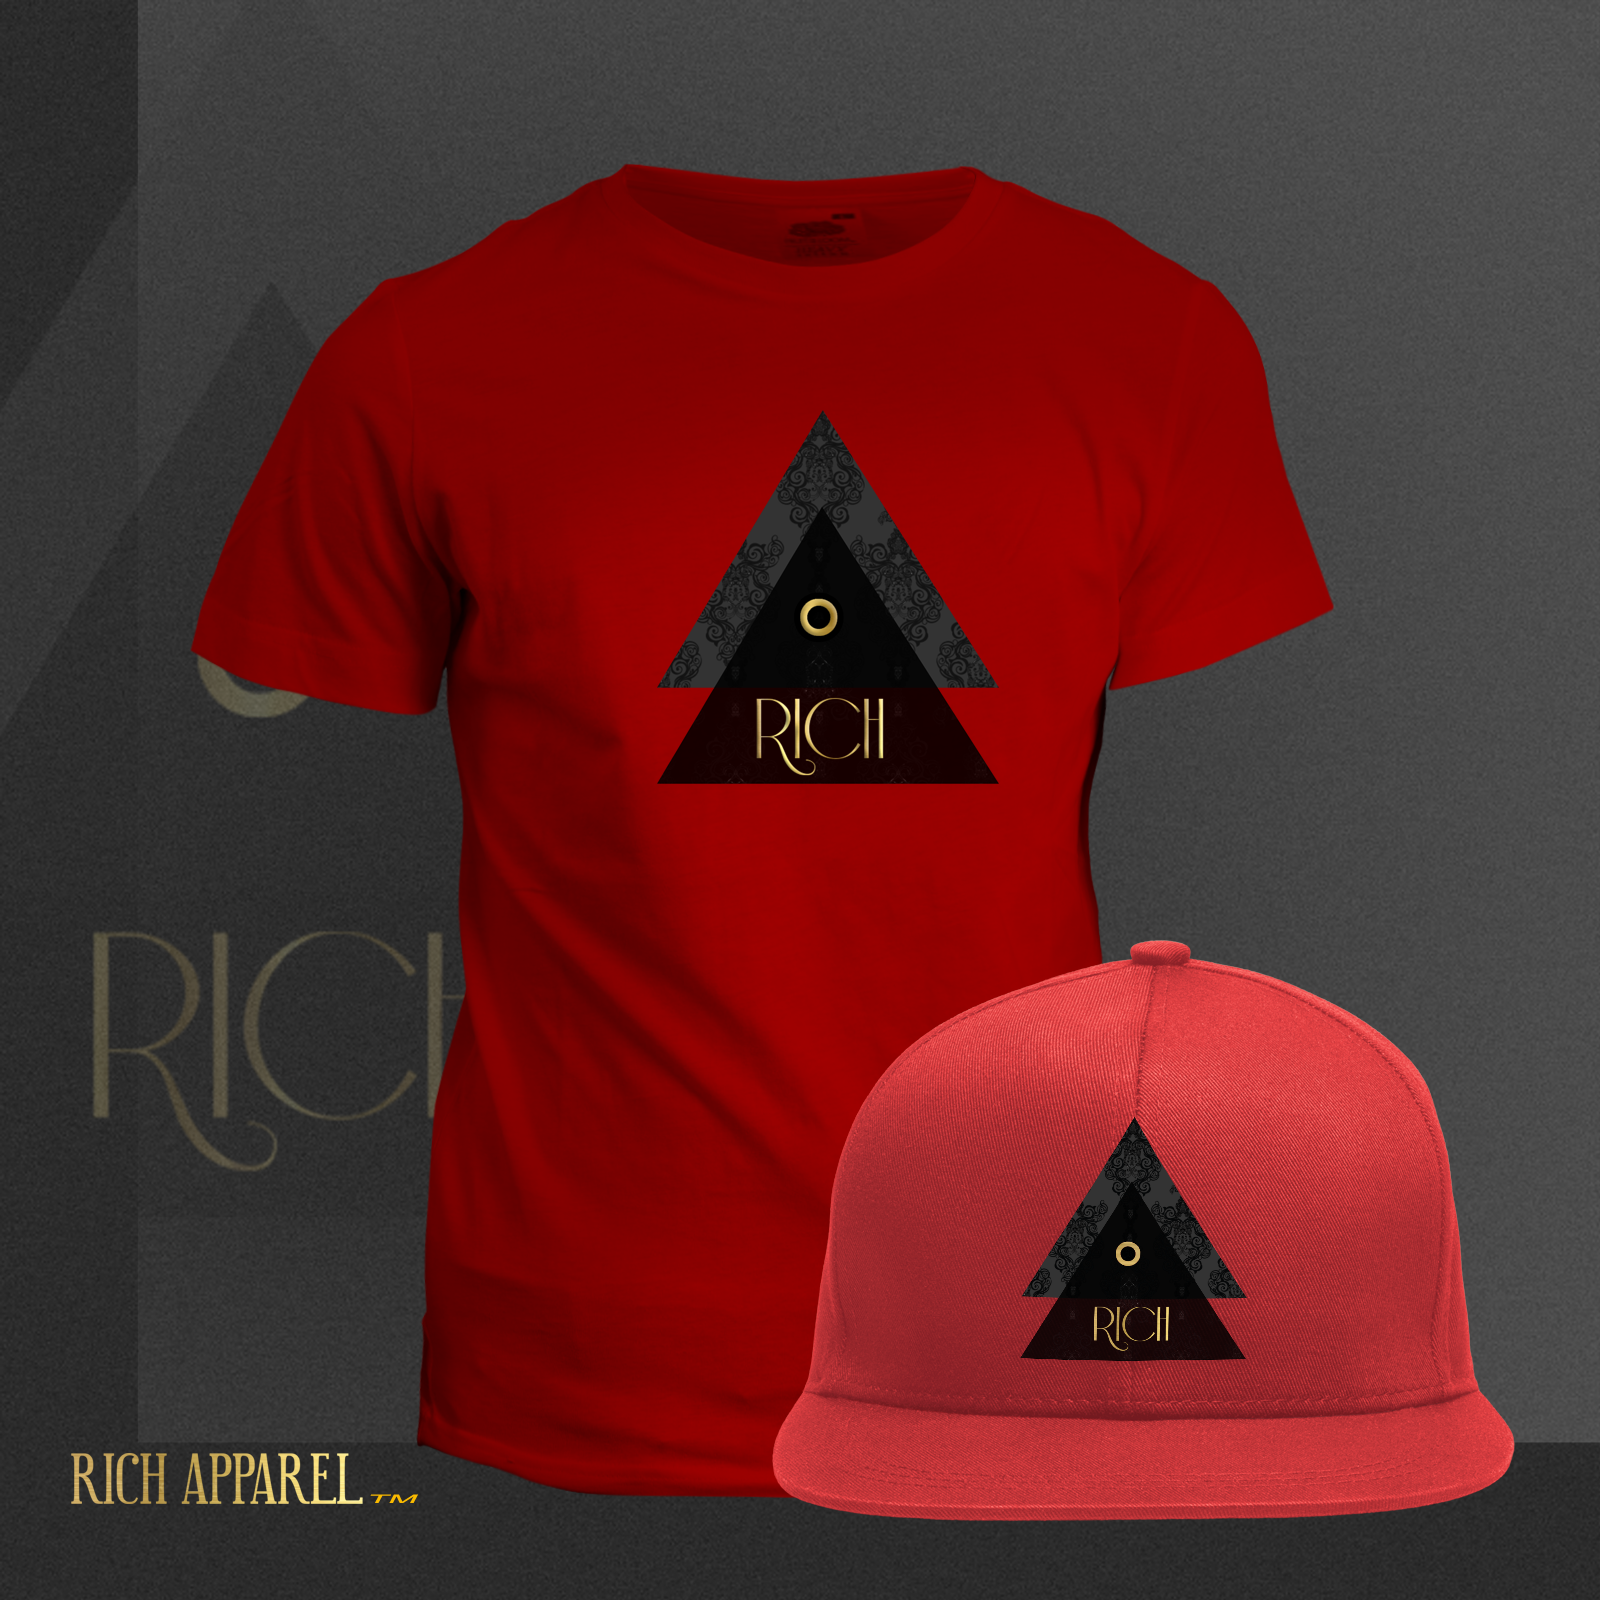 RICH EL RED T and Hat GoldSolid logo